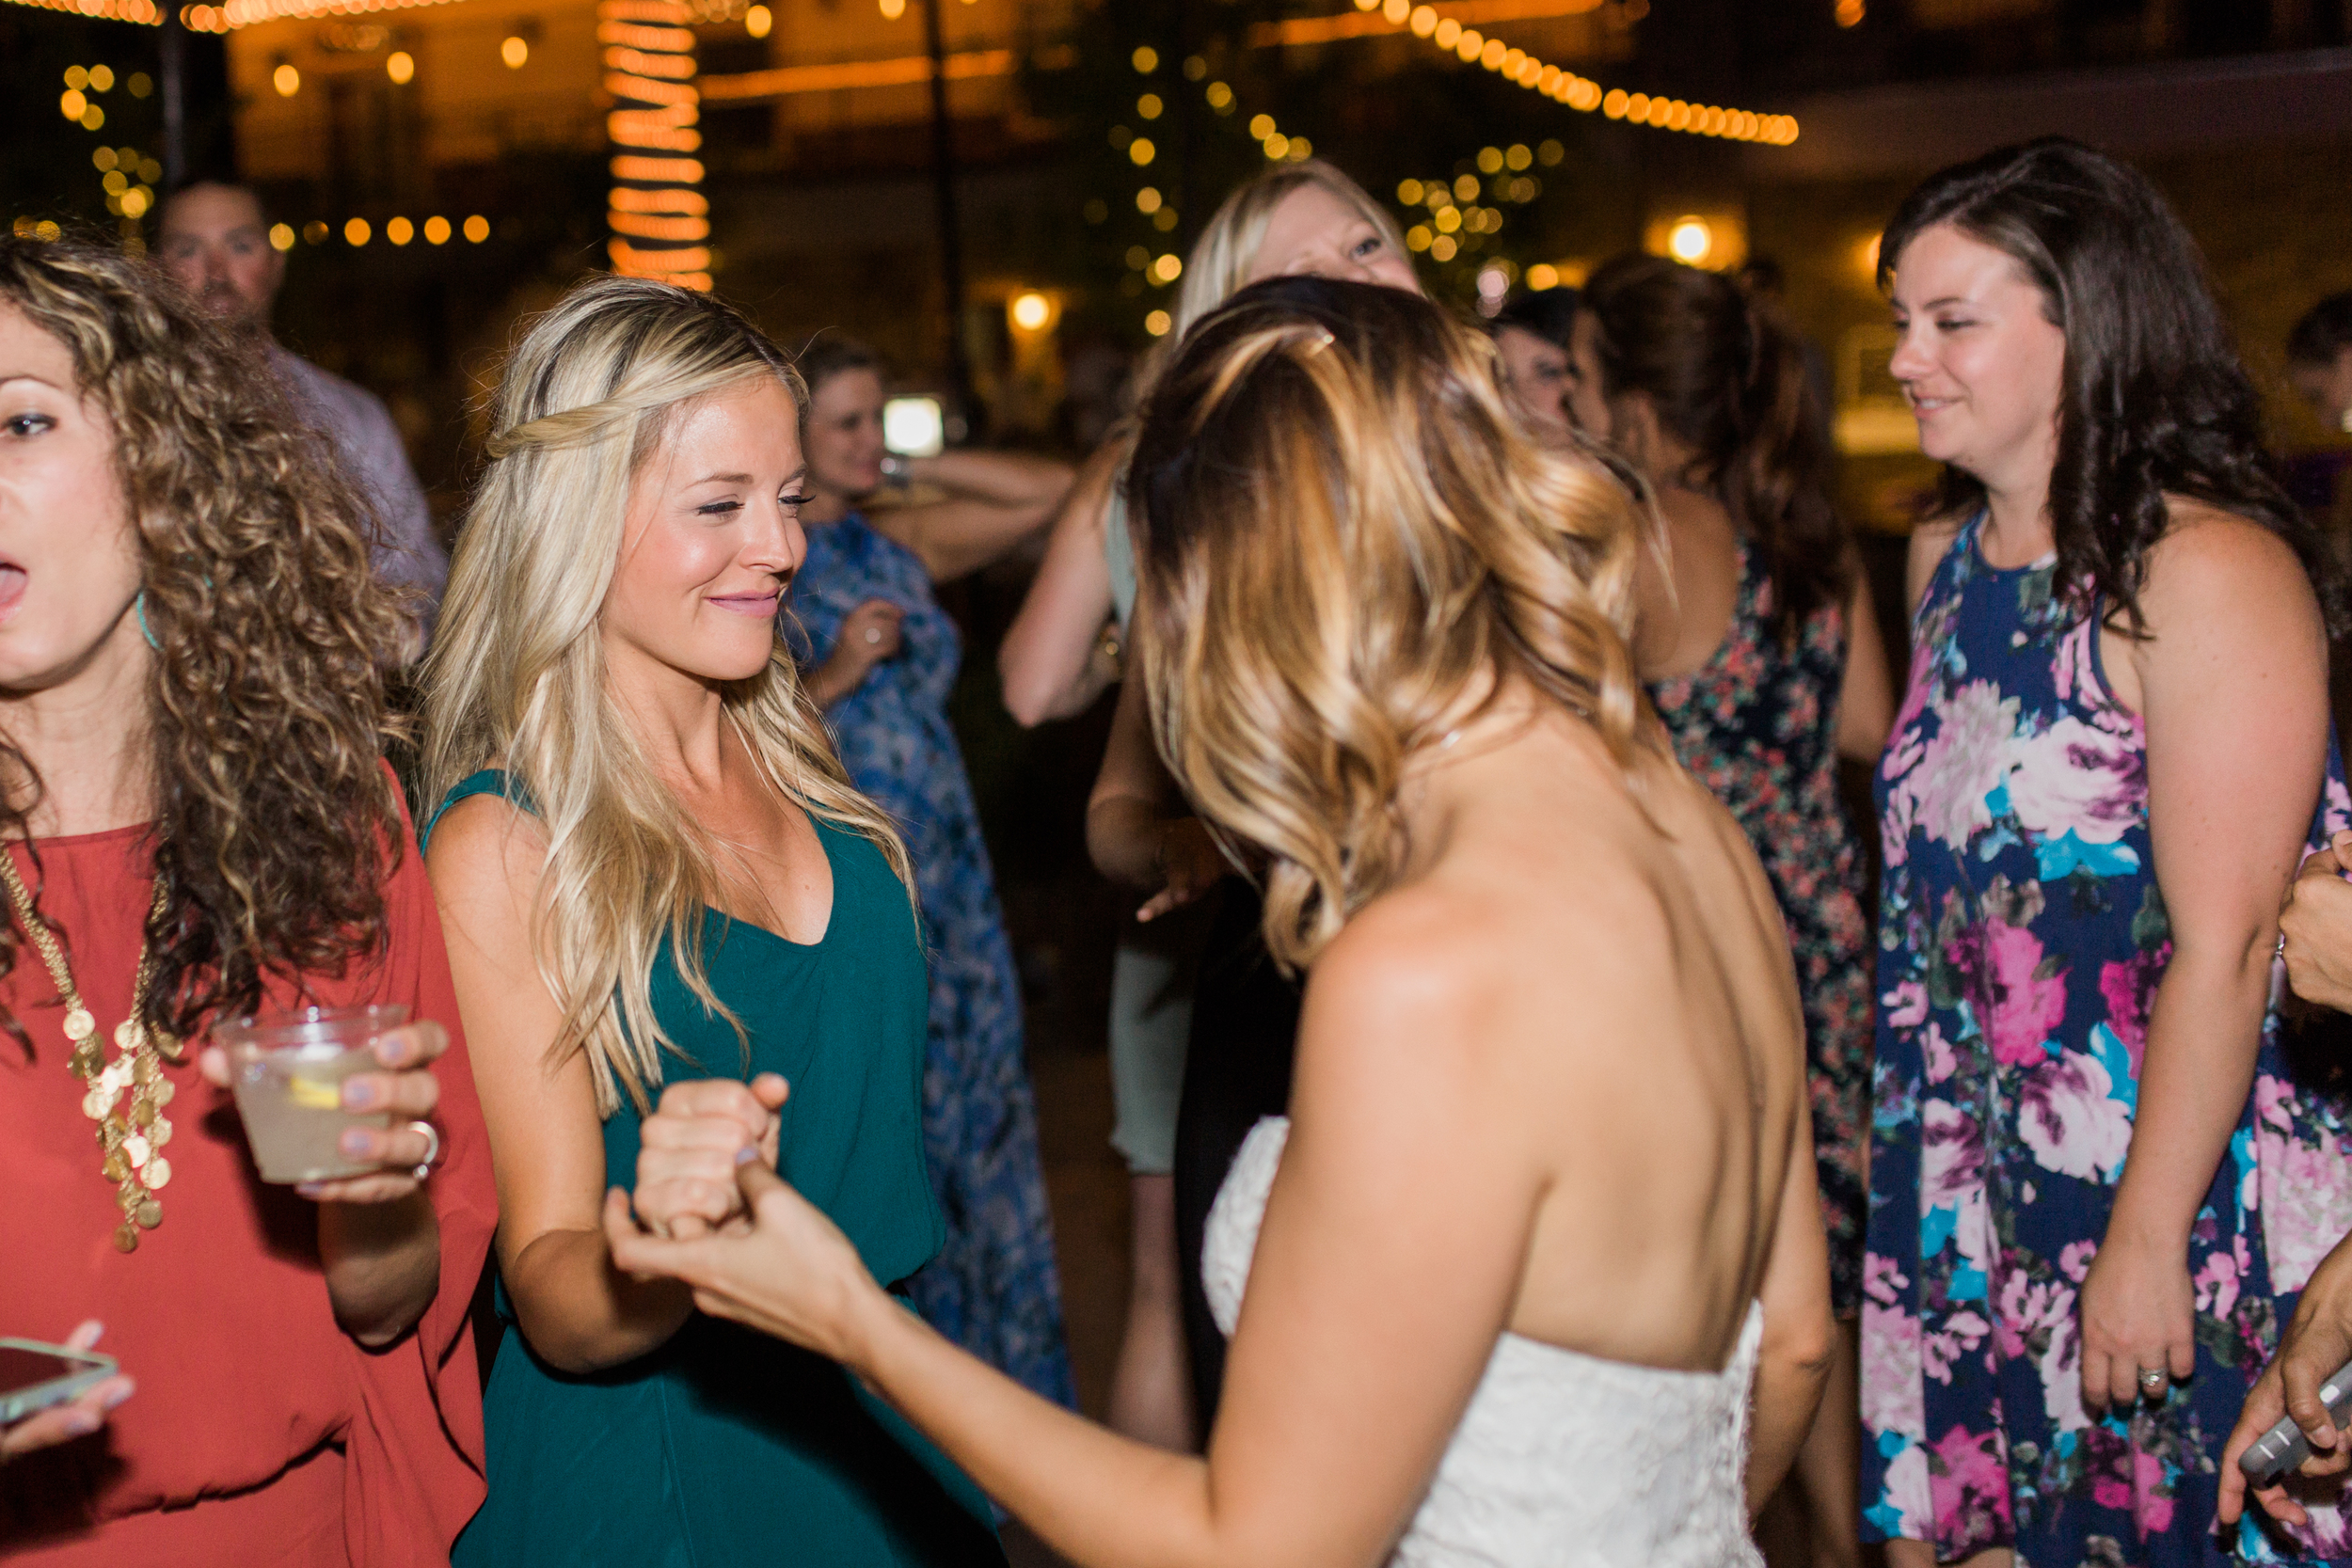 wolfe_heights_event_center_wedding_photography